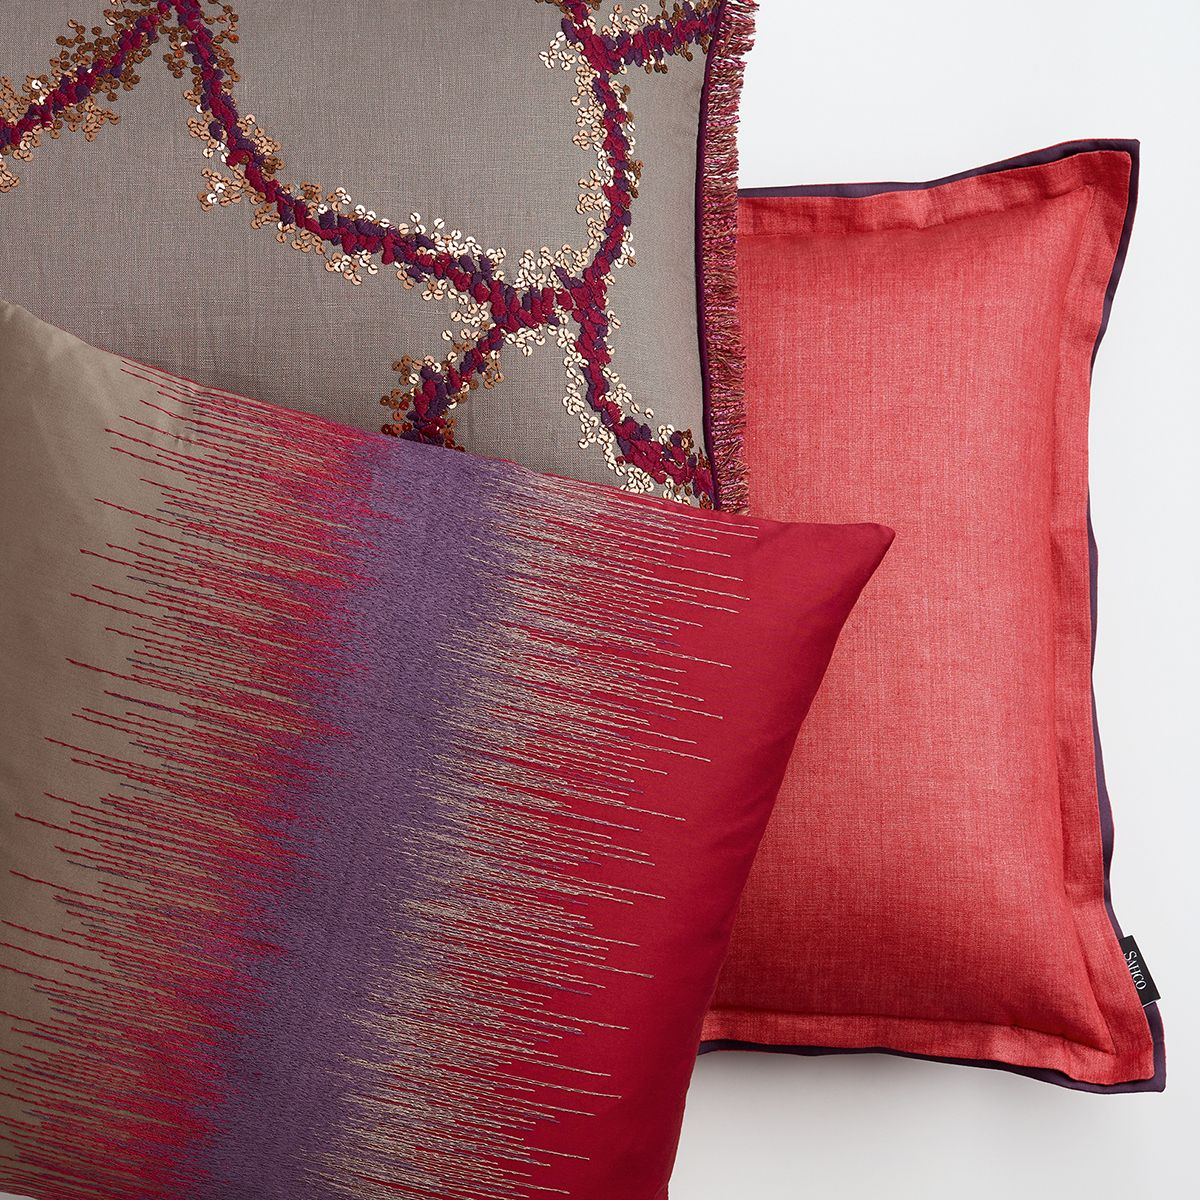 Sahco home collection cushions red sahco pinterest